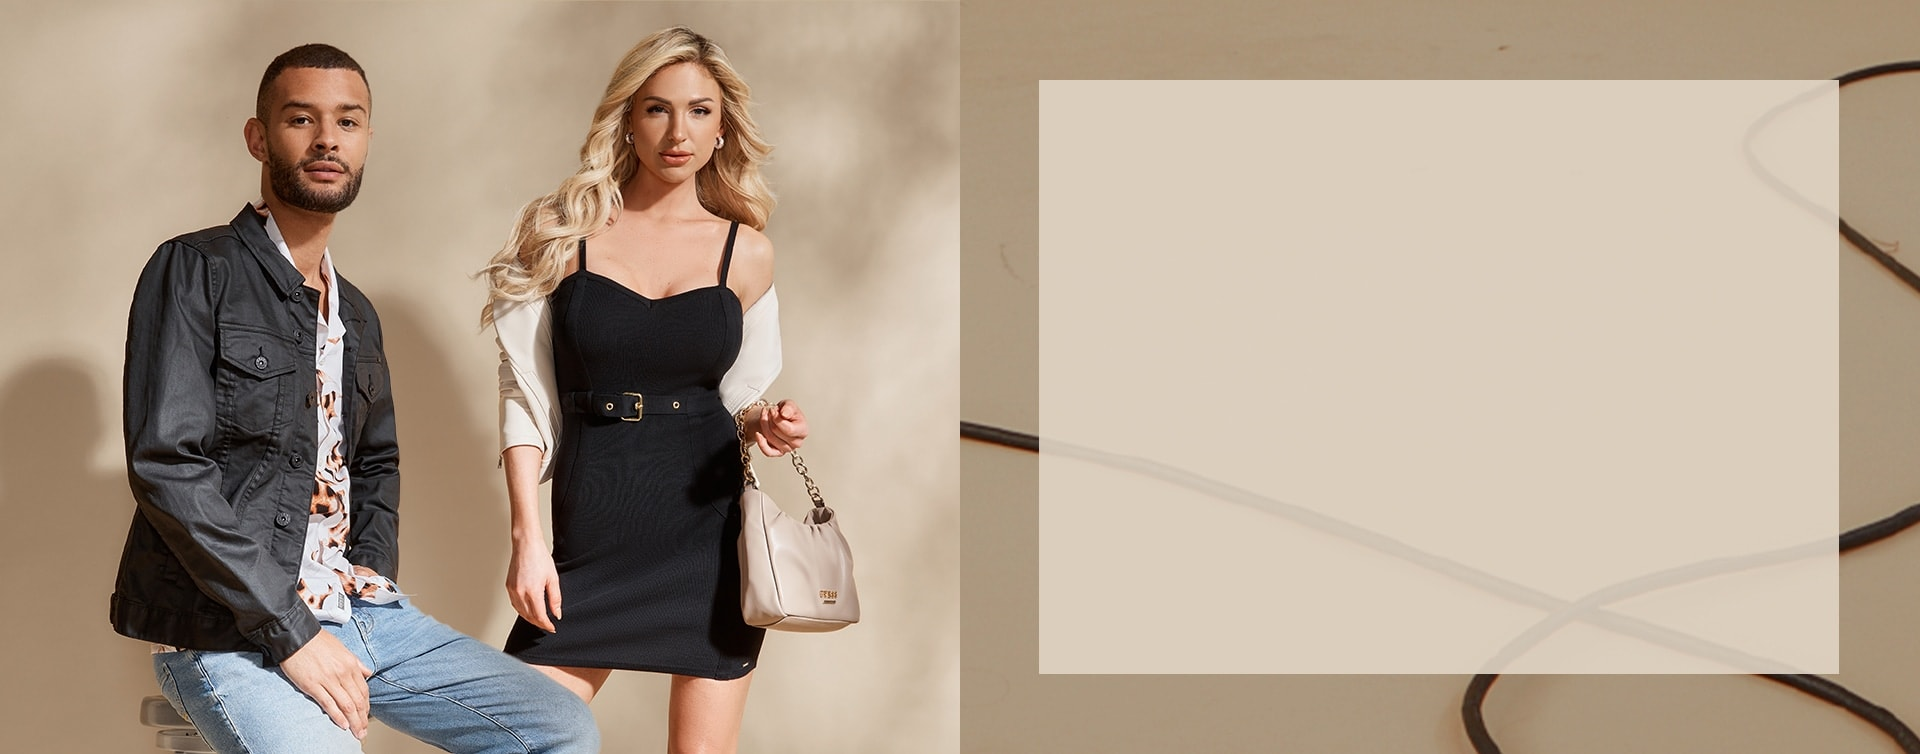 shop denim jeans and handbags for women and men